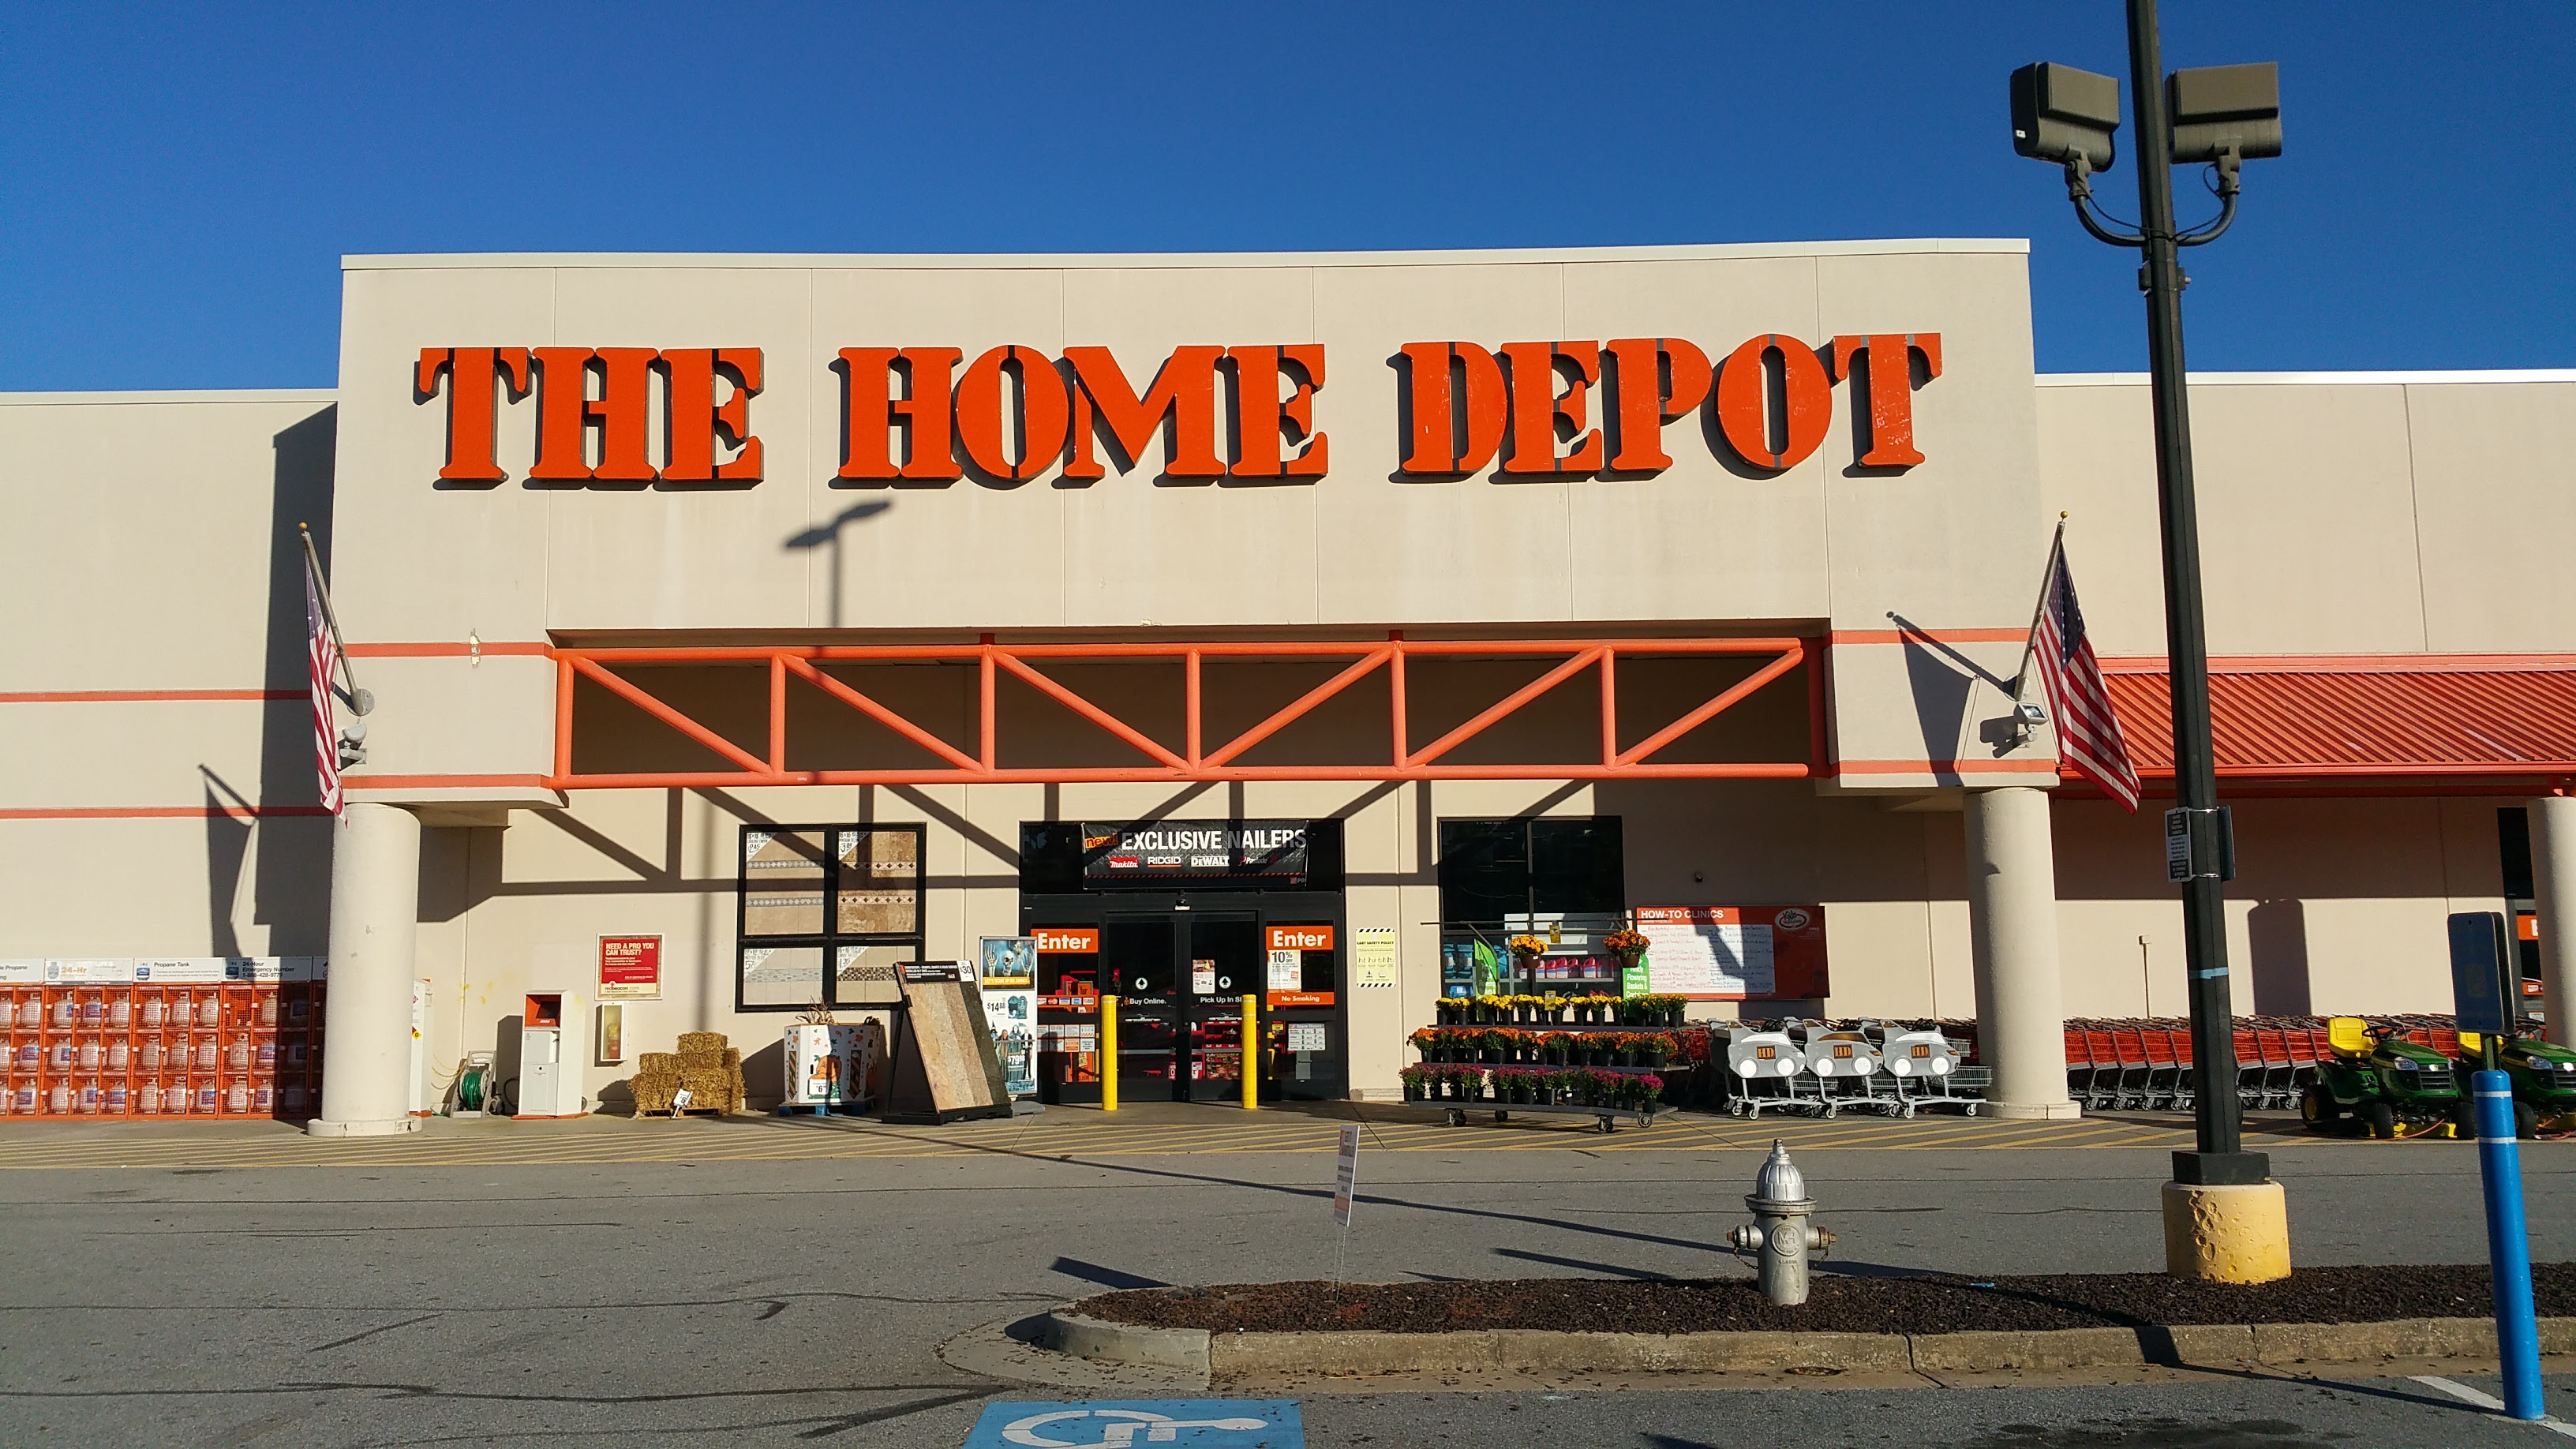 The Home Depot 4121 Highway 78 Lilburn, GA Home Depot - MapQuest